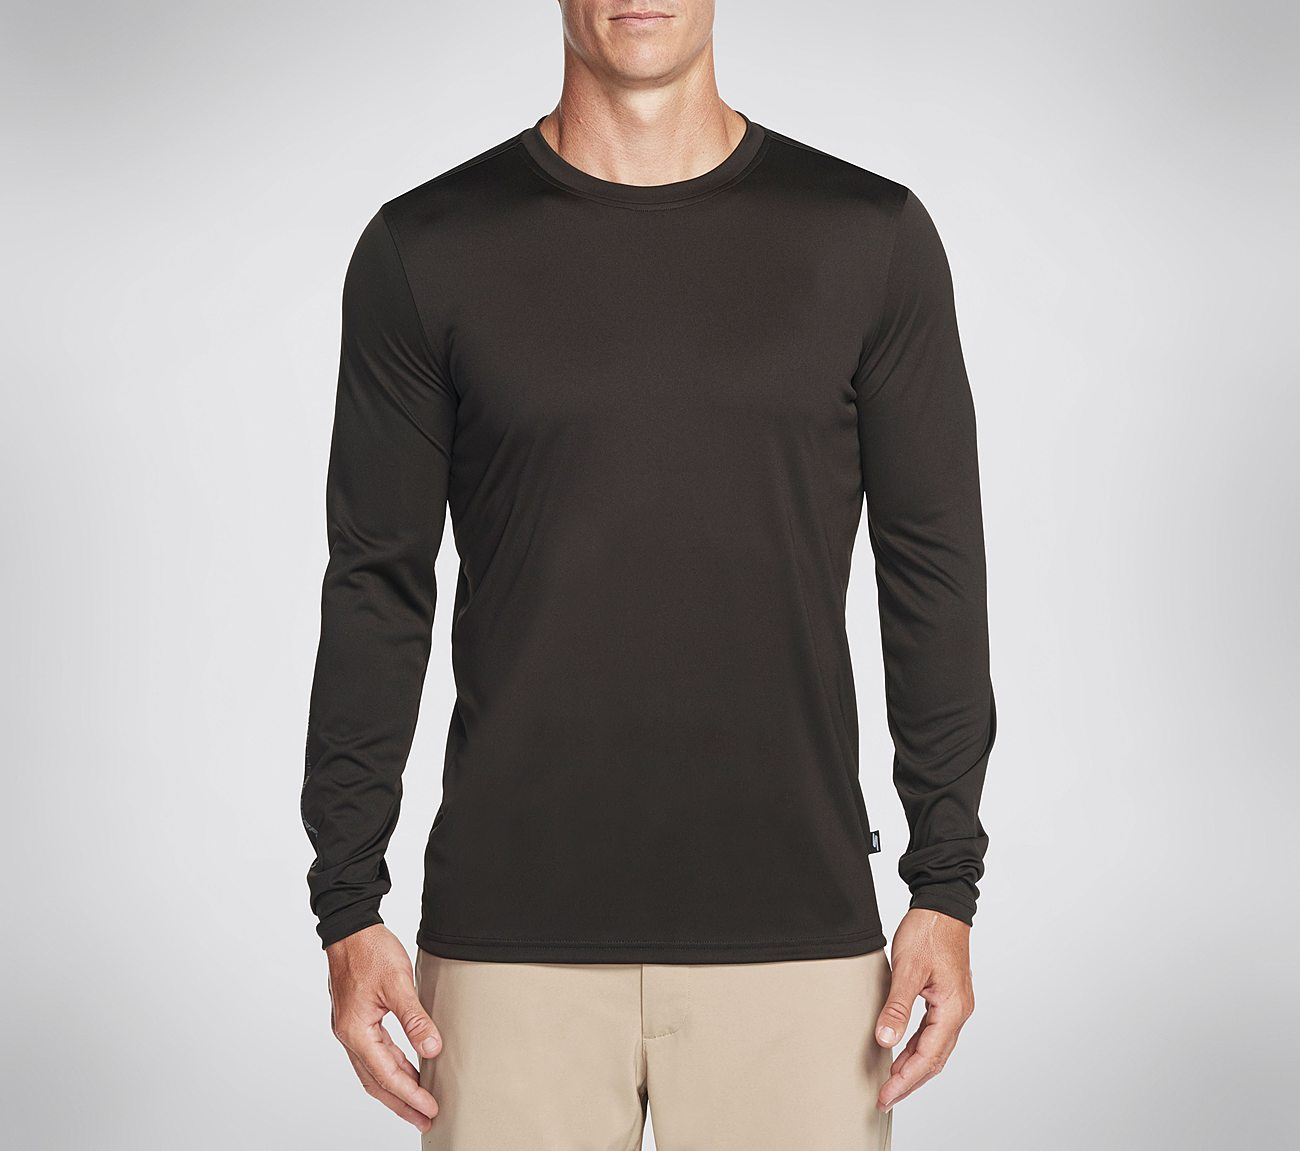 Skechers Overcast Long Sleeve Tee Shirt